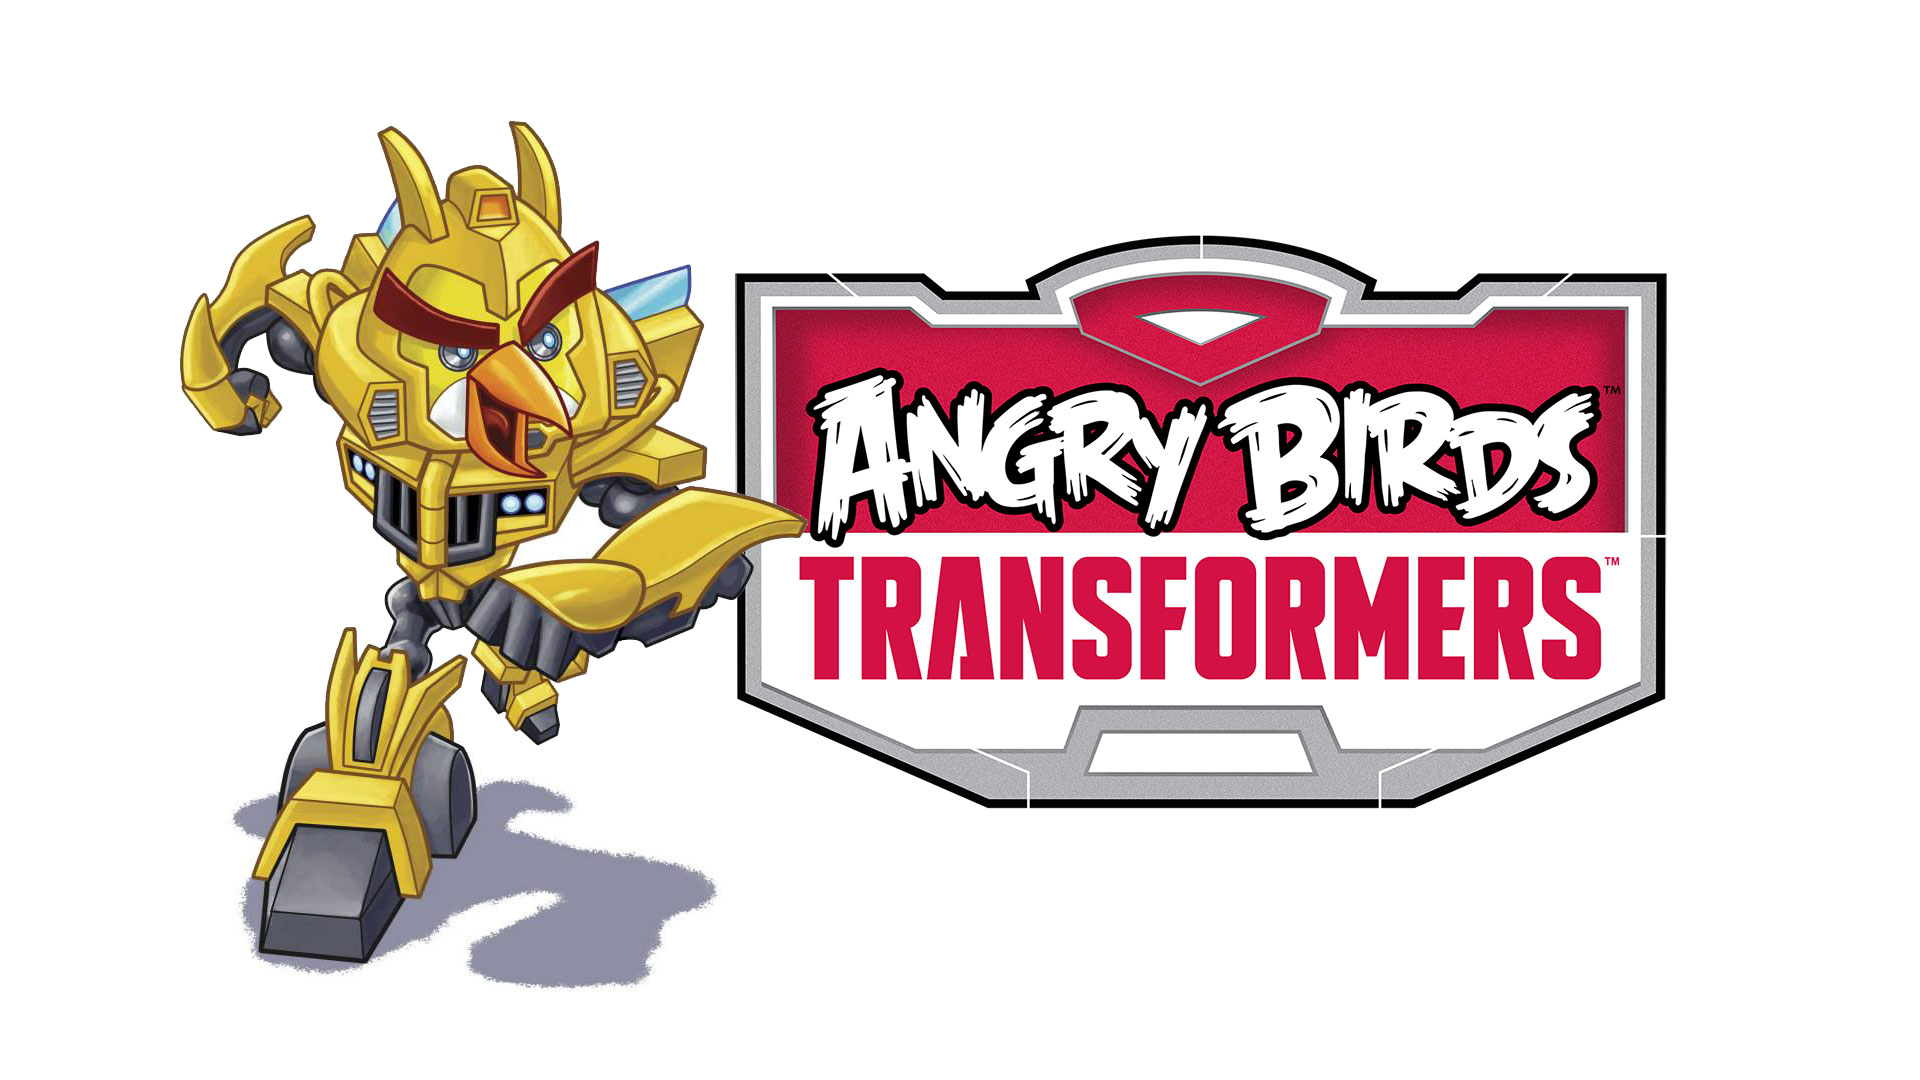 Angry-Birds-Transformers-Logo-with-Chuck-as-Bumblebee-1920x1080-wallpaper-wp3402402